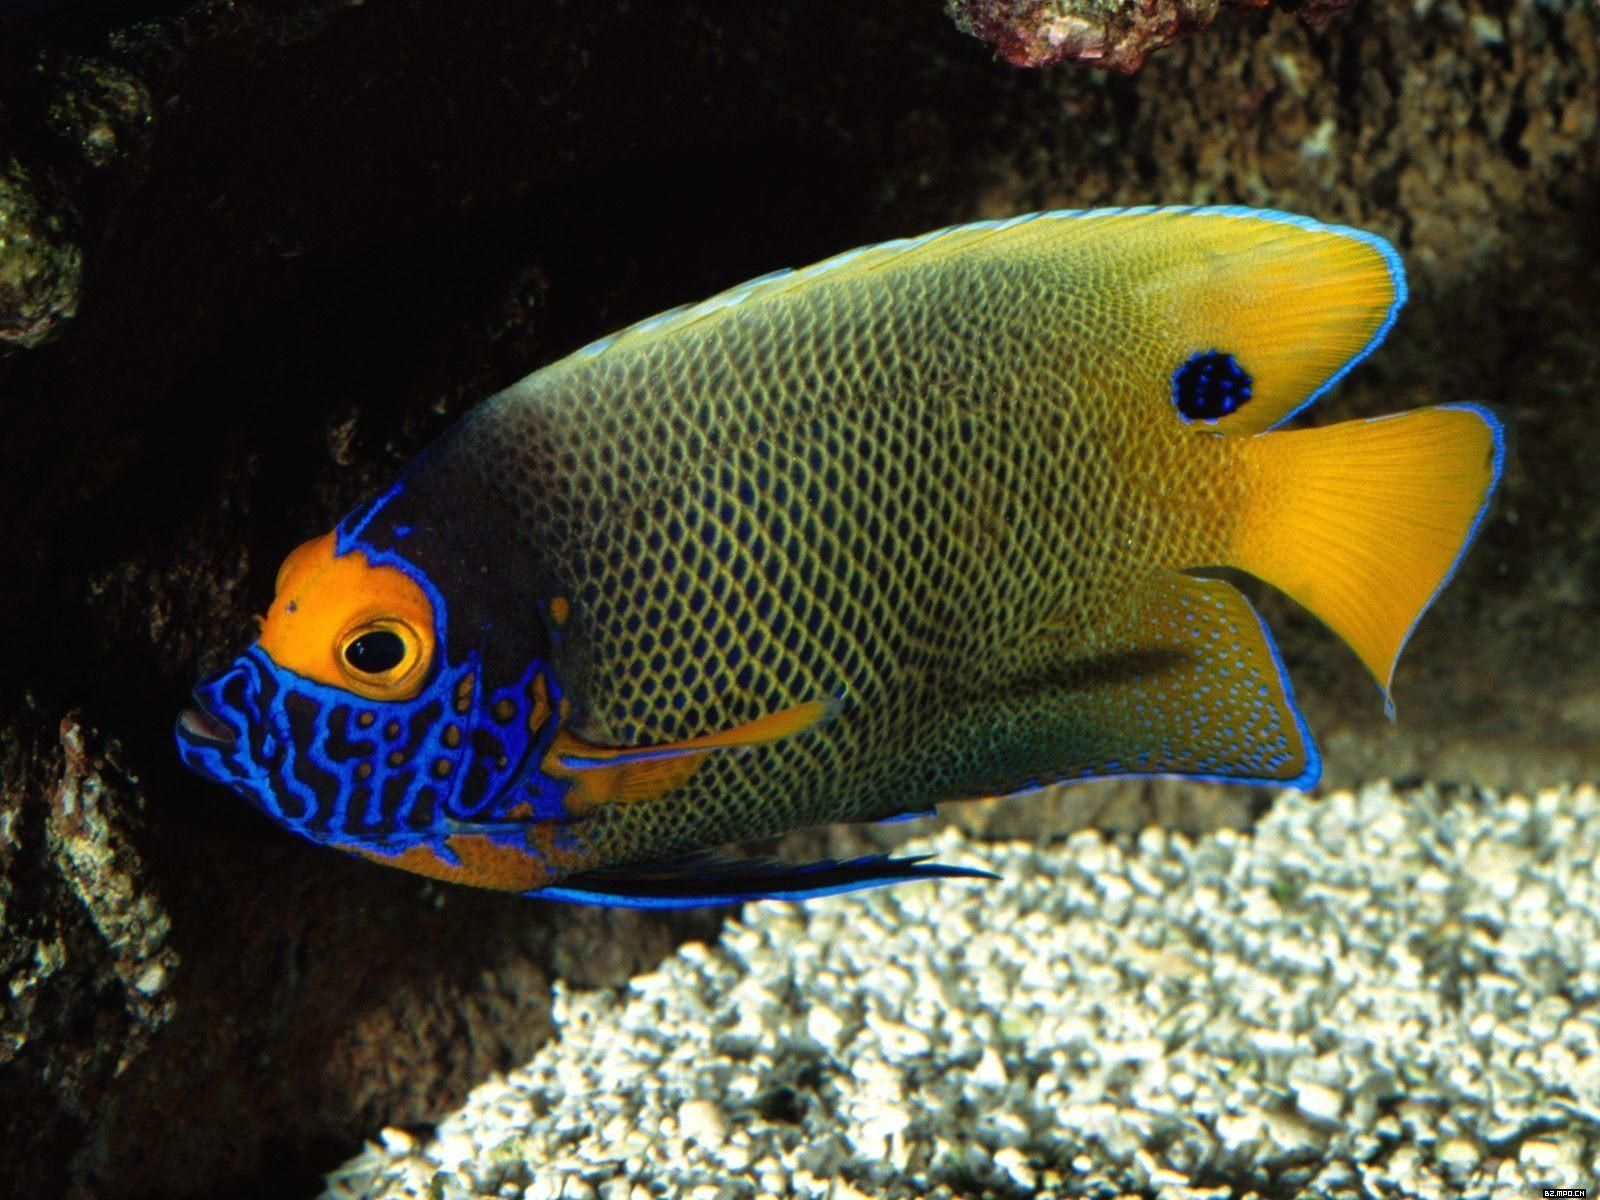 Tropical Fish Wallpapers 45 Best Free Tropical Fish Hd Backgrounds For Android On In 2020 Fish Wallpaper Tropical Fish Hd Backgrounds